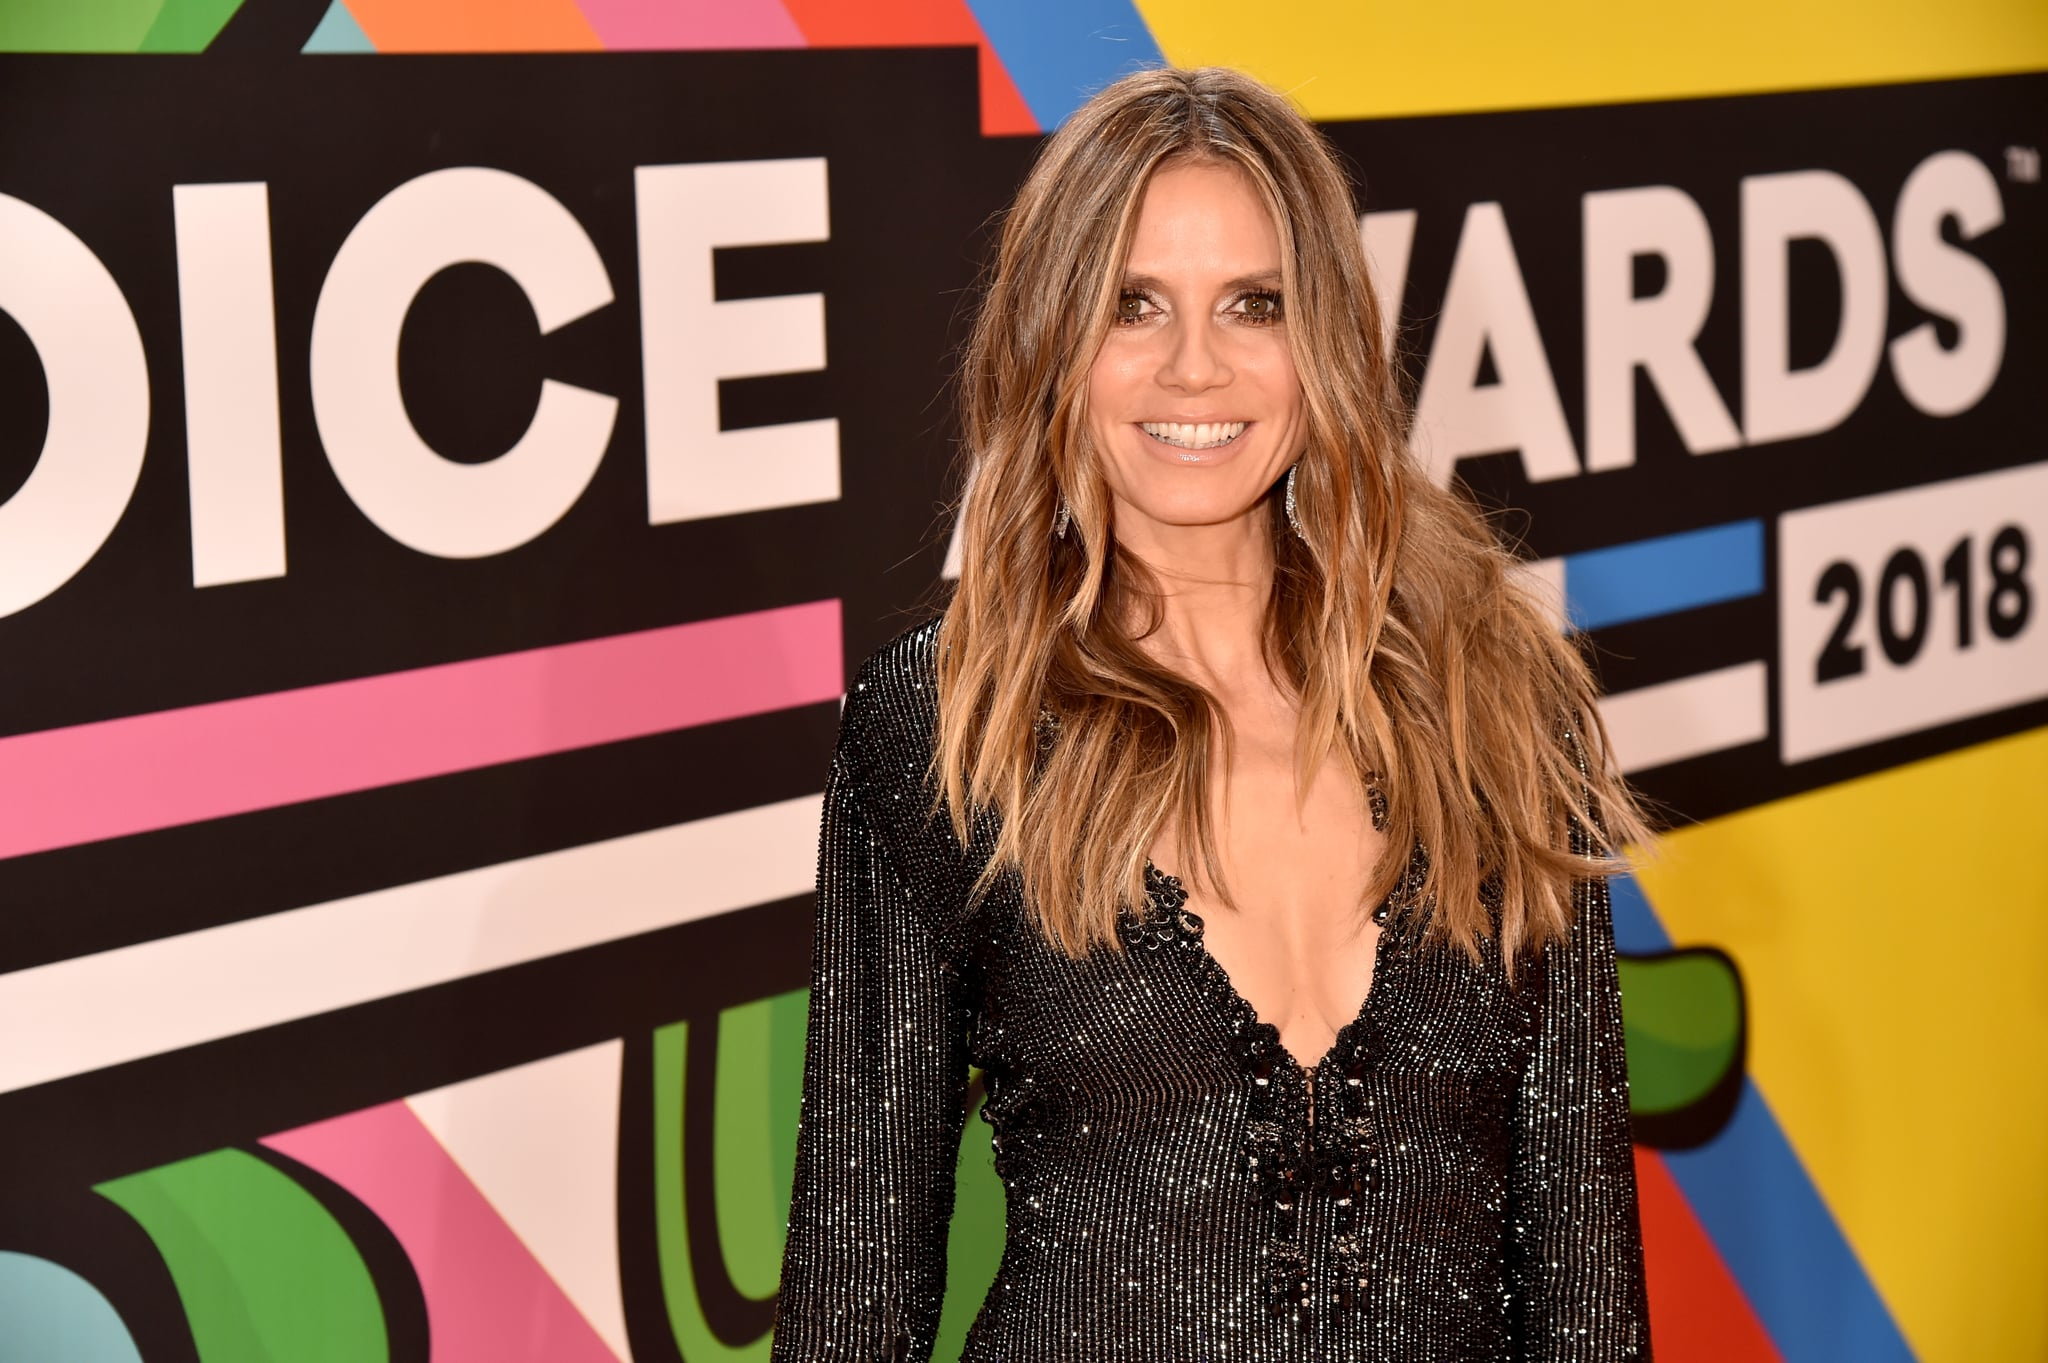 INGLEWOOD, CA - MARCH 24:  Heidi Klum attends Nickelodeon's 2018 Kids' Choice Awards at The Forum on March 24, 2018 in Inglewood, California.  (Photo by Jeff Kravitz/FilmMagic)